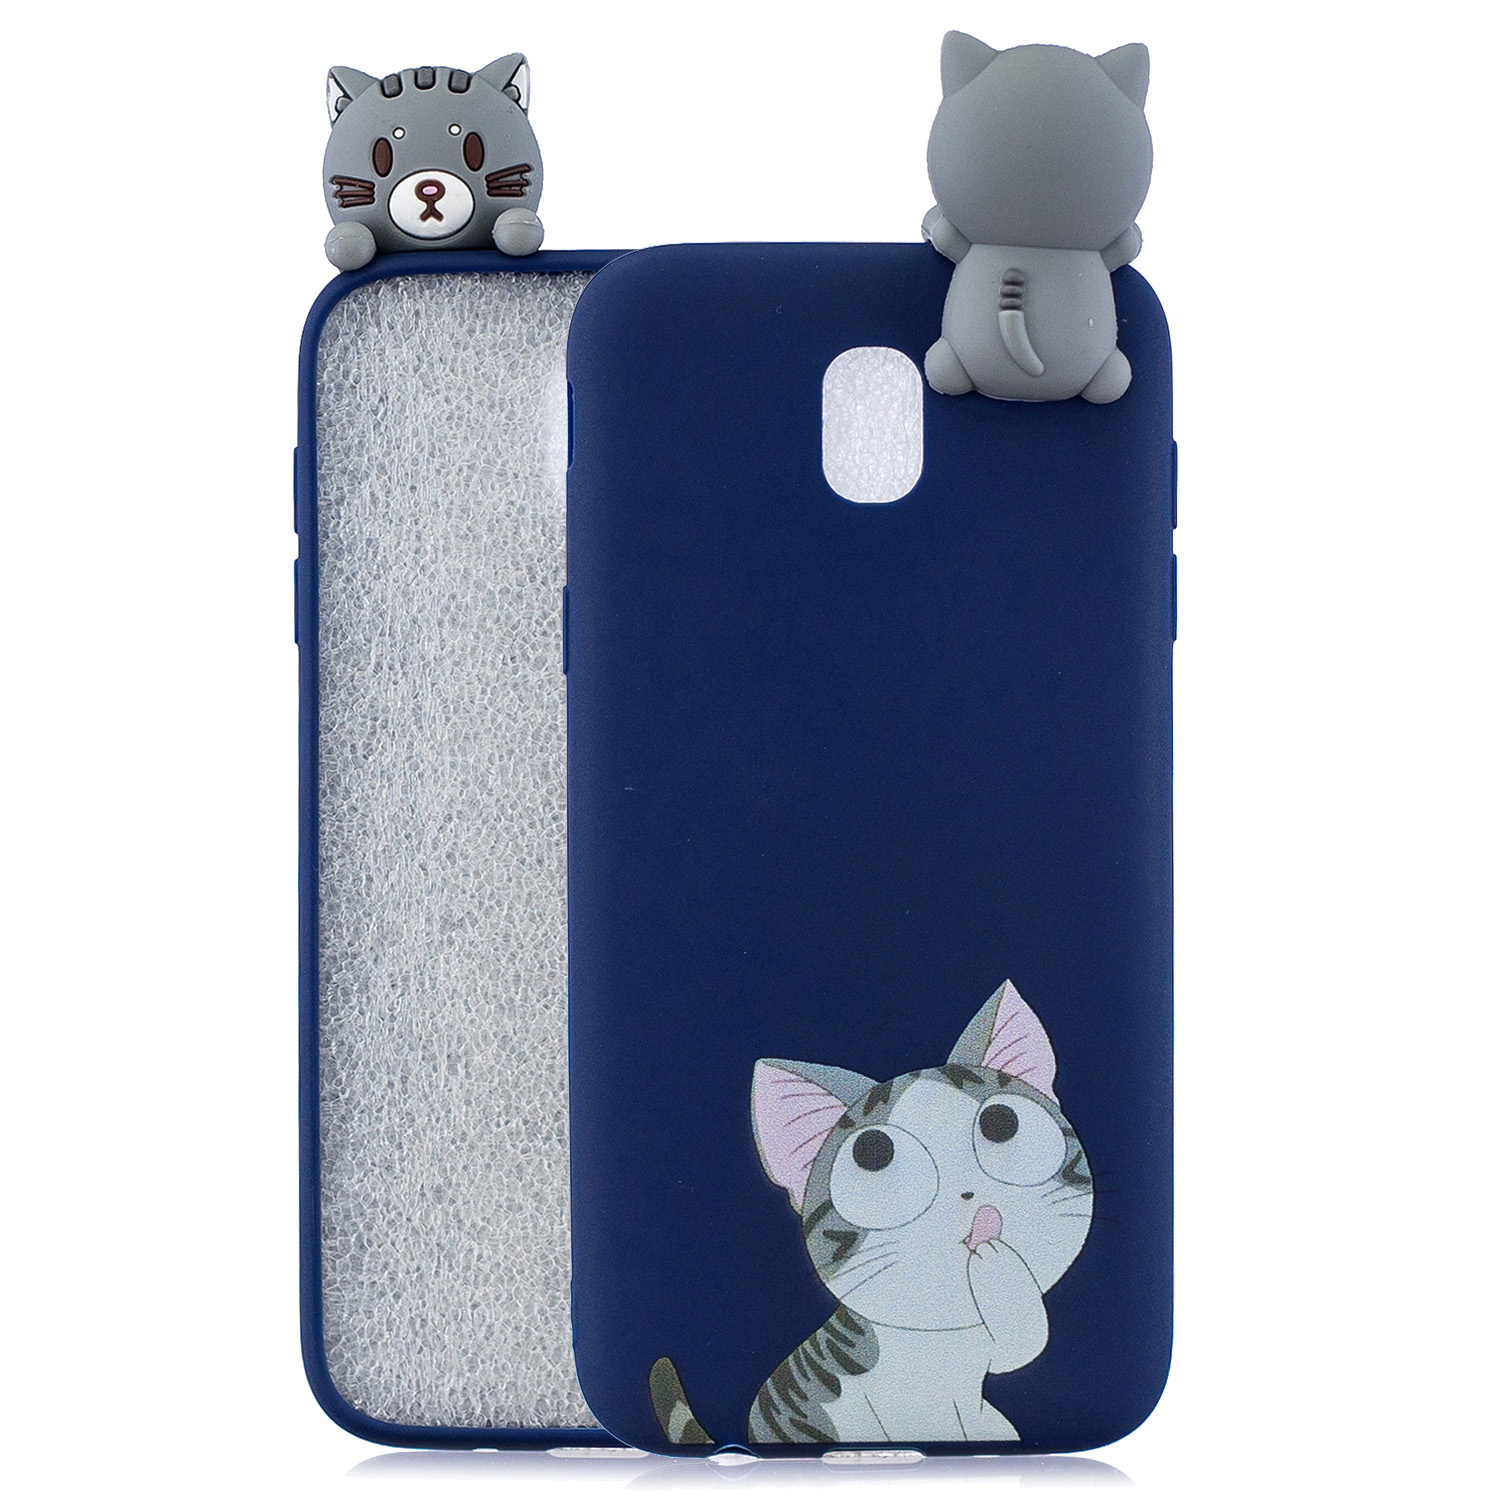 For Redmi 8A 3D Cartoon Painting Back Cover Soft TPU Mobile Phone Case Shell big face cat